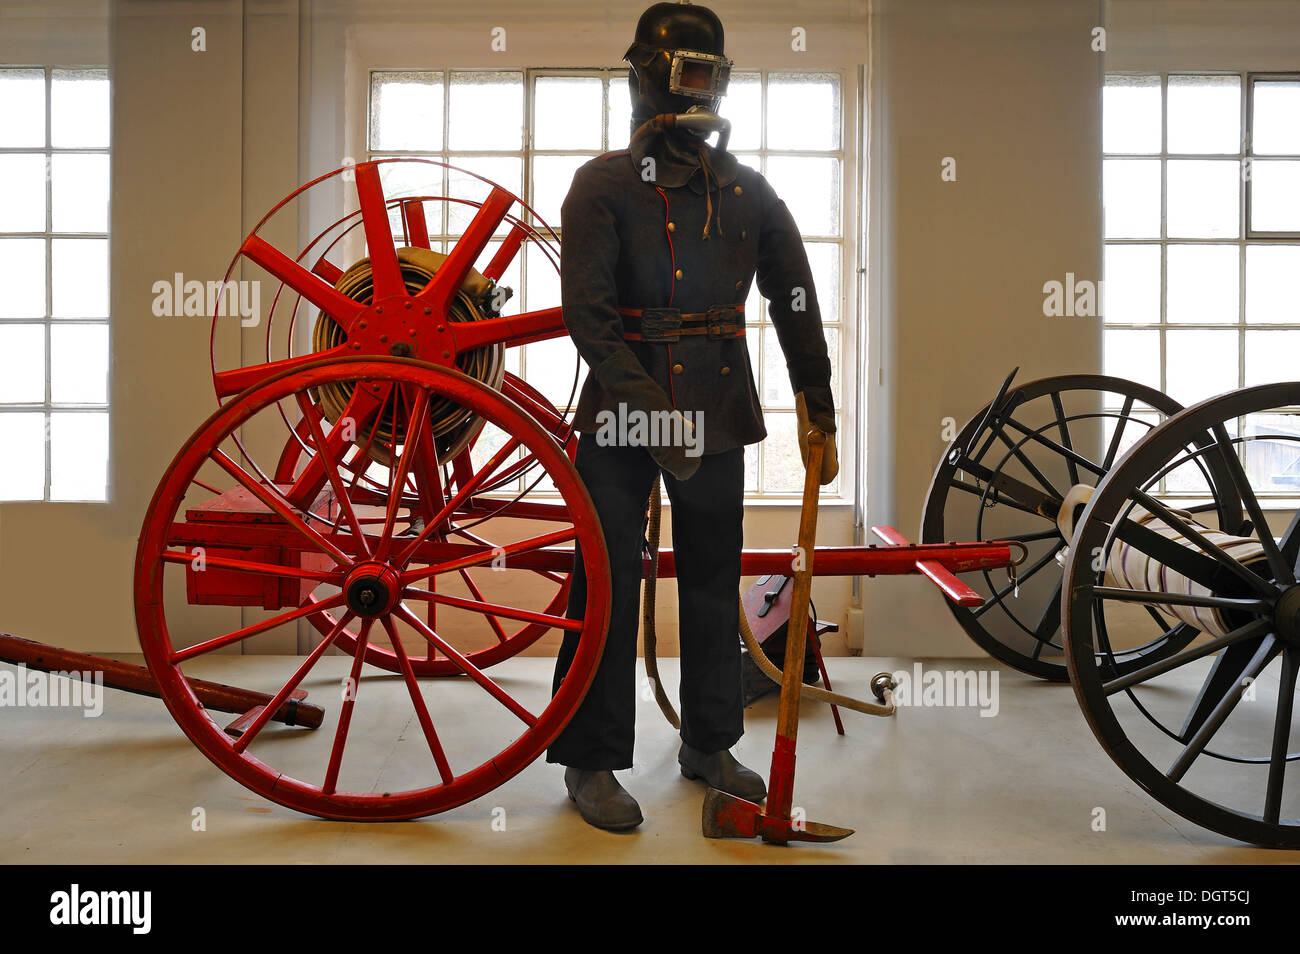 Firefighter wearing a breathing protection mask in front of a hose reel, early 20th century, exhibition of 150 years - Stock Image